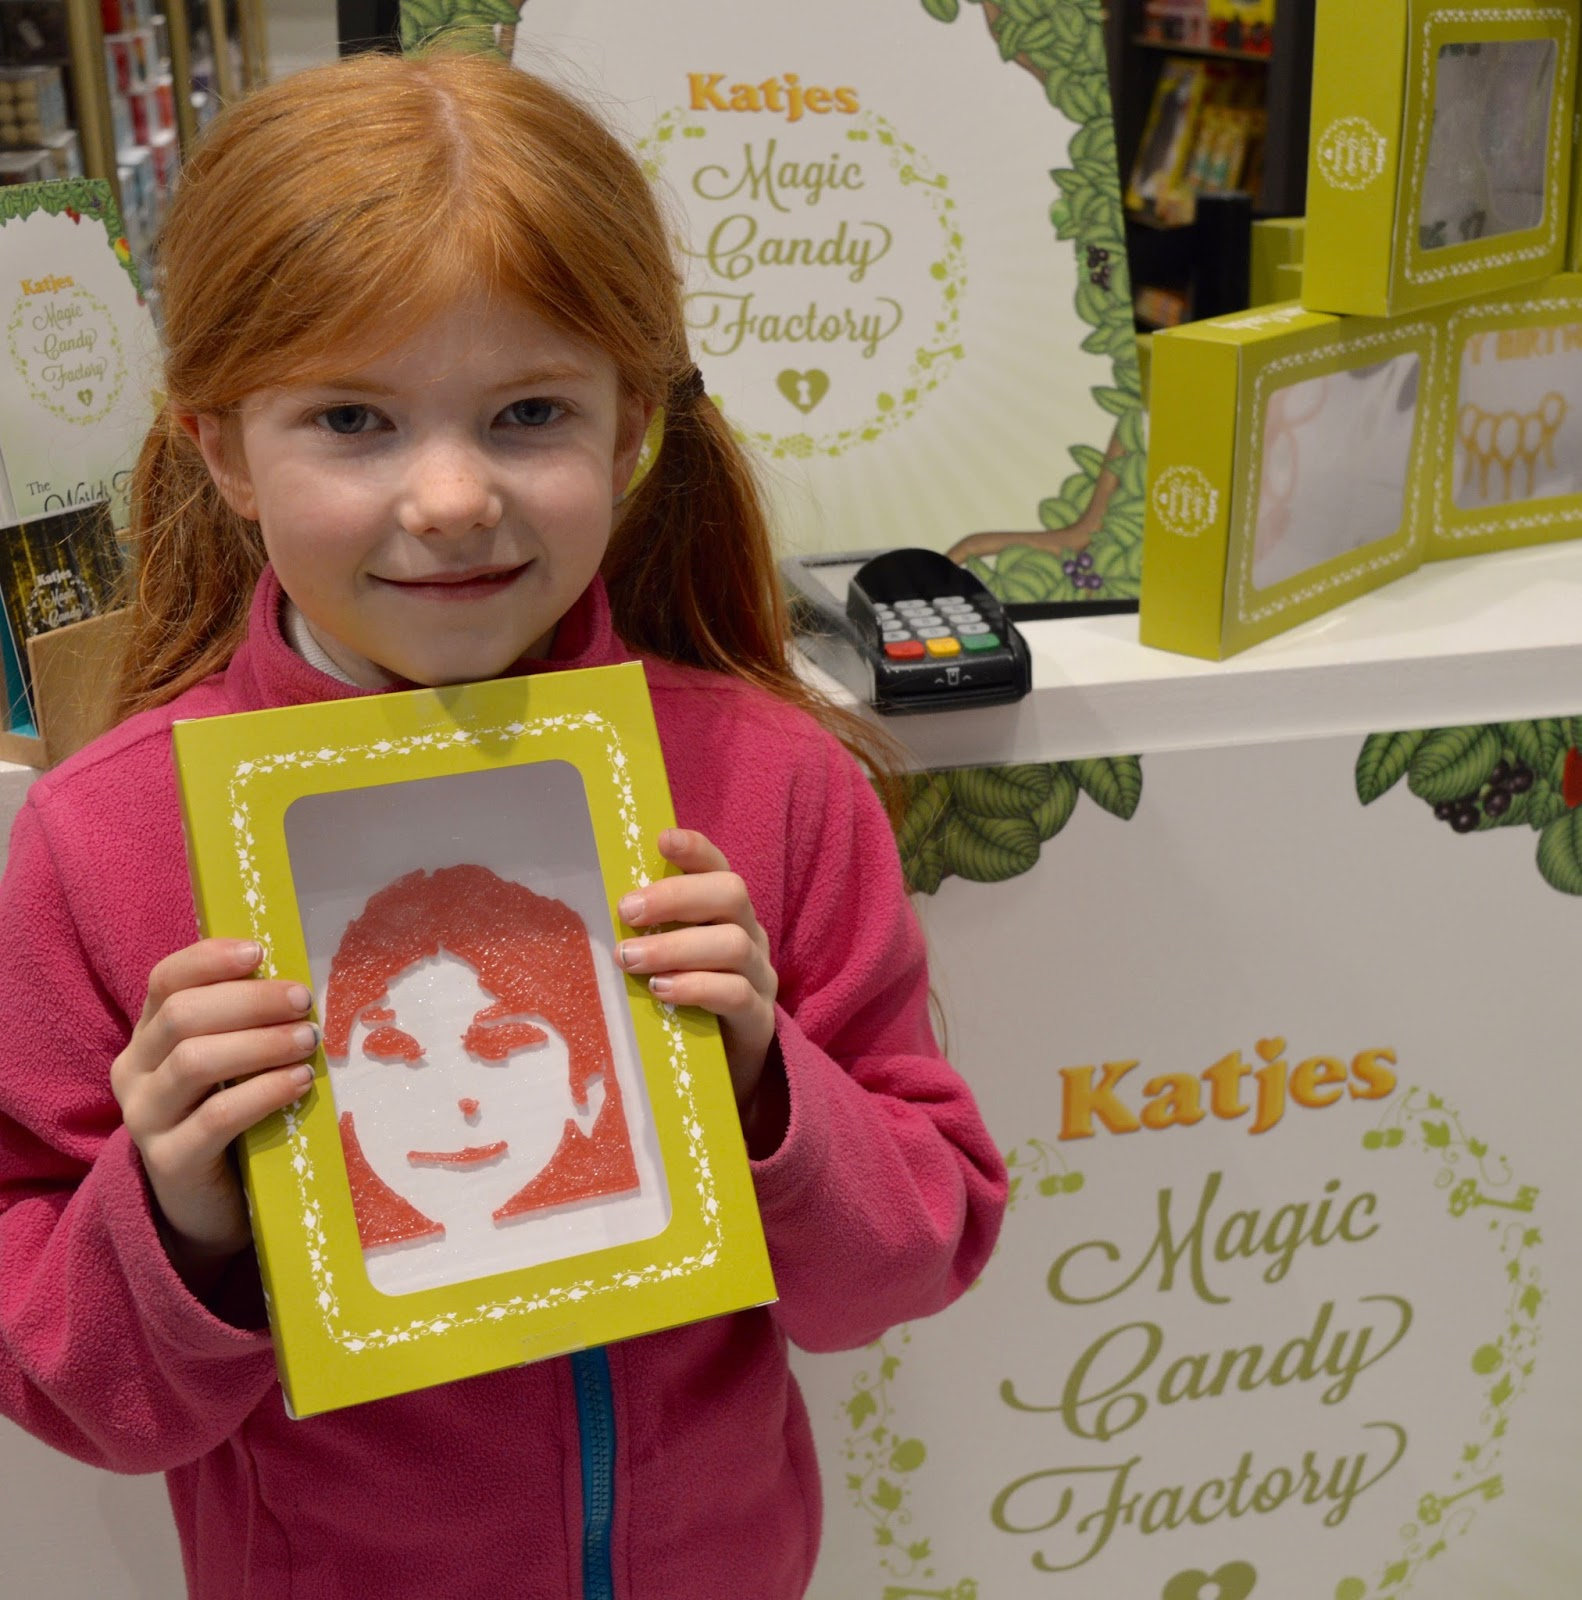 Create Magic Sweet Selfies with Katjes Magic Candy Factory at Fenwick Newcastle this Easter - final sweet selfie